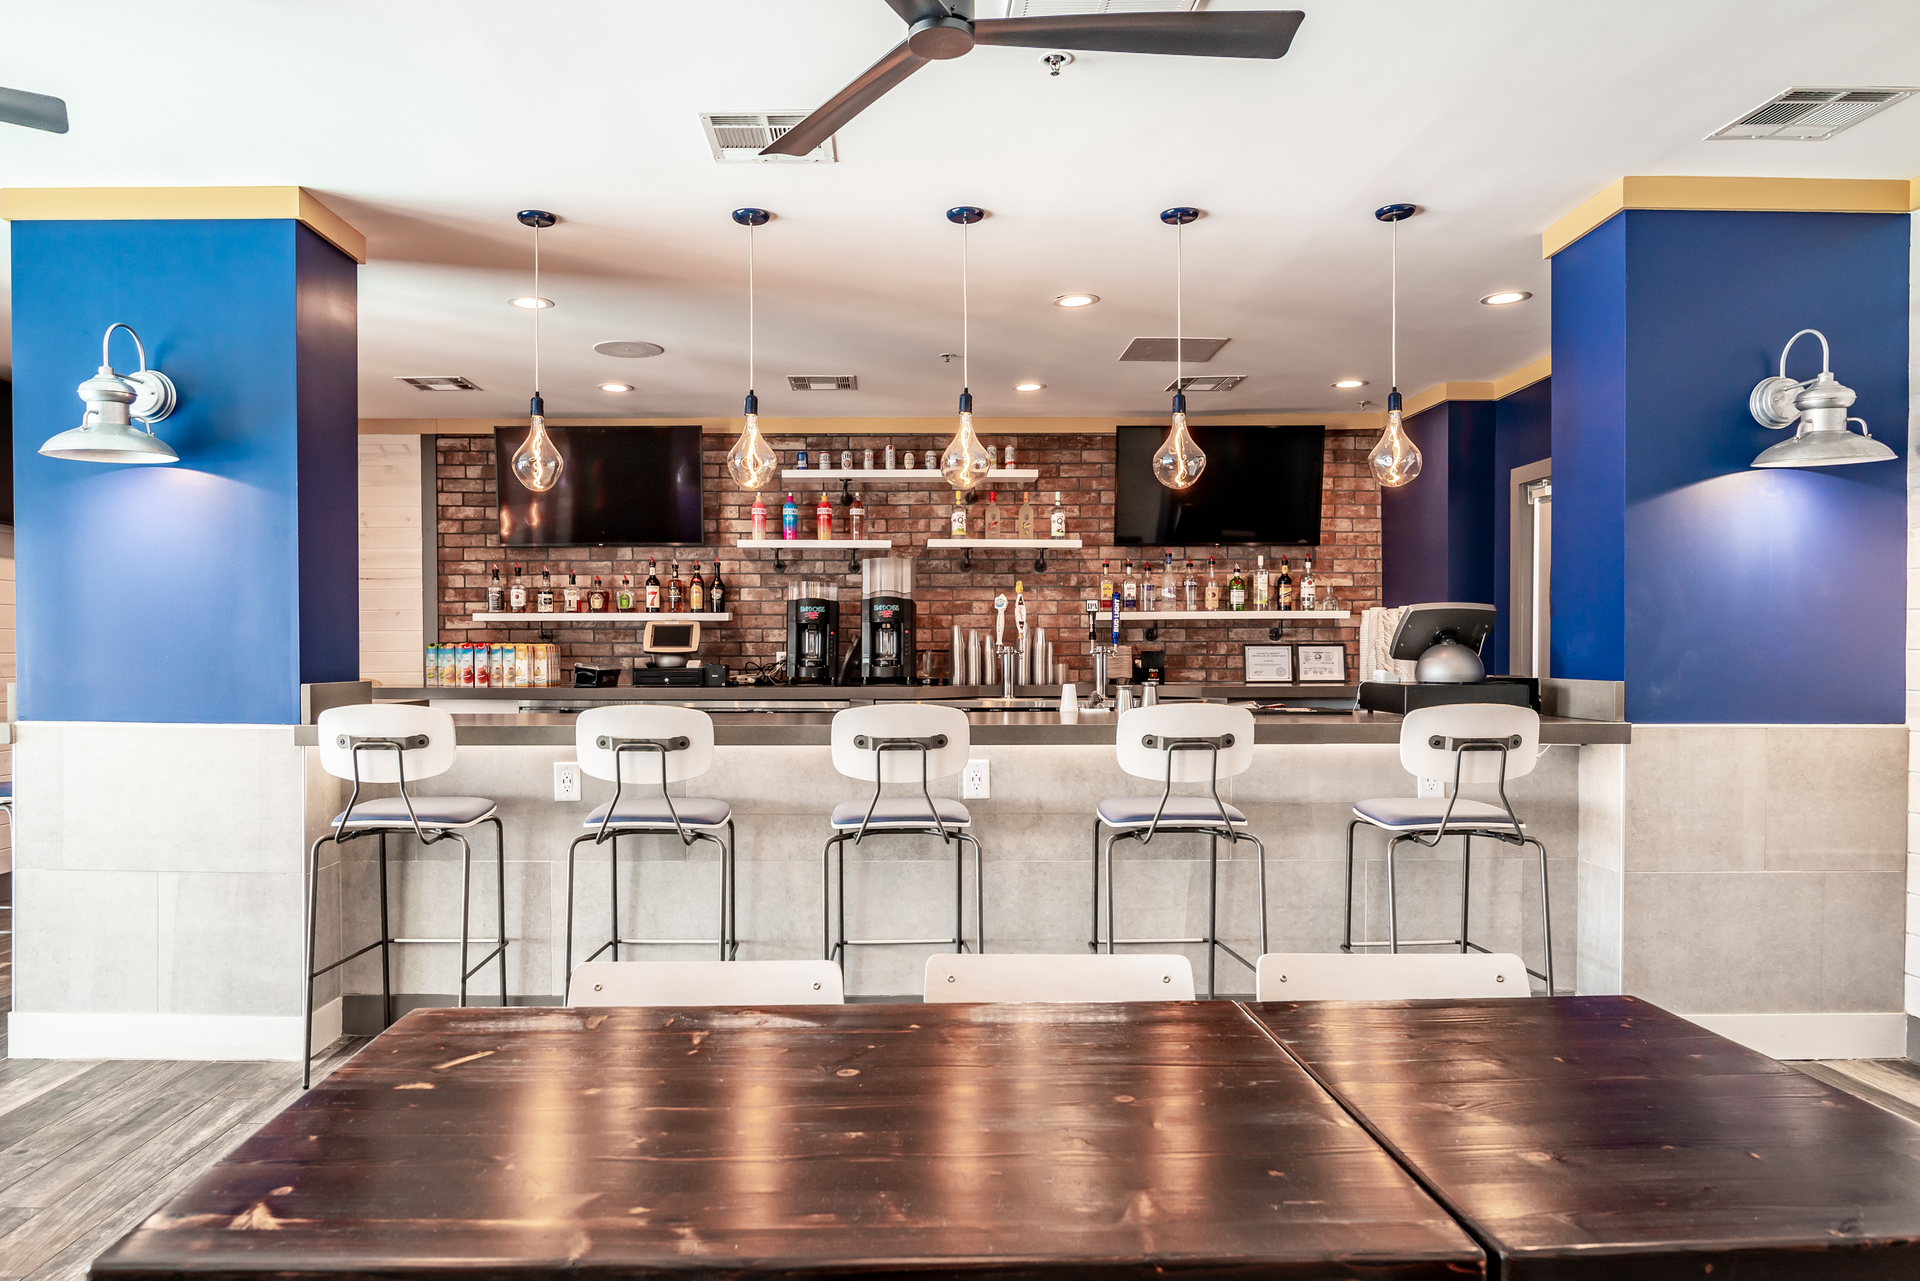 Restaurants like the Rusty Reel and other commercial spaces require lighting that is rugged and low maintenance. The design team turned to Barn Light Electric to find high-quality lighting that could not only fulfill those needs, but also play a role in adding a splash of style to the space.